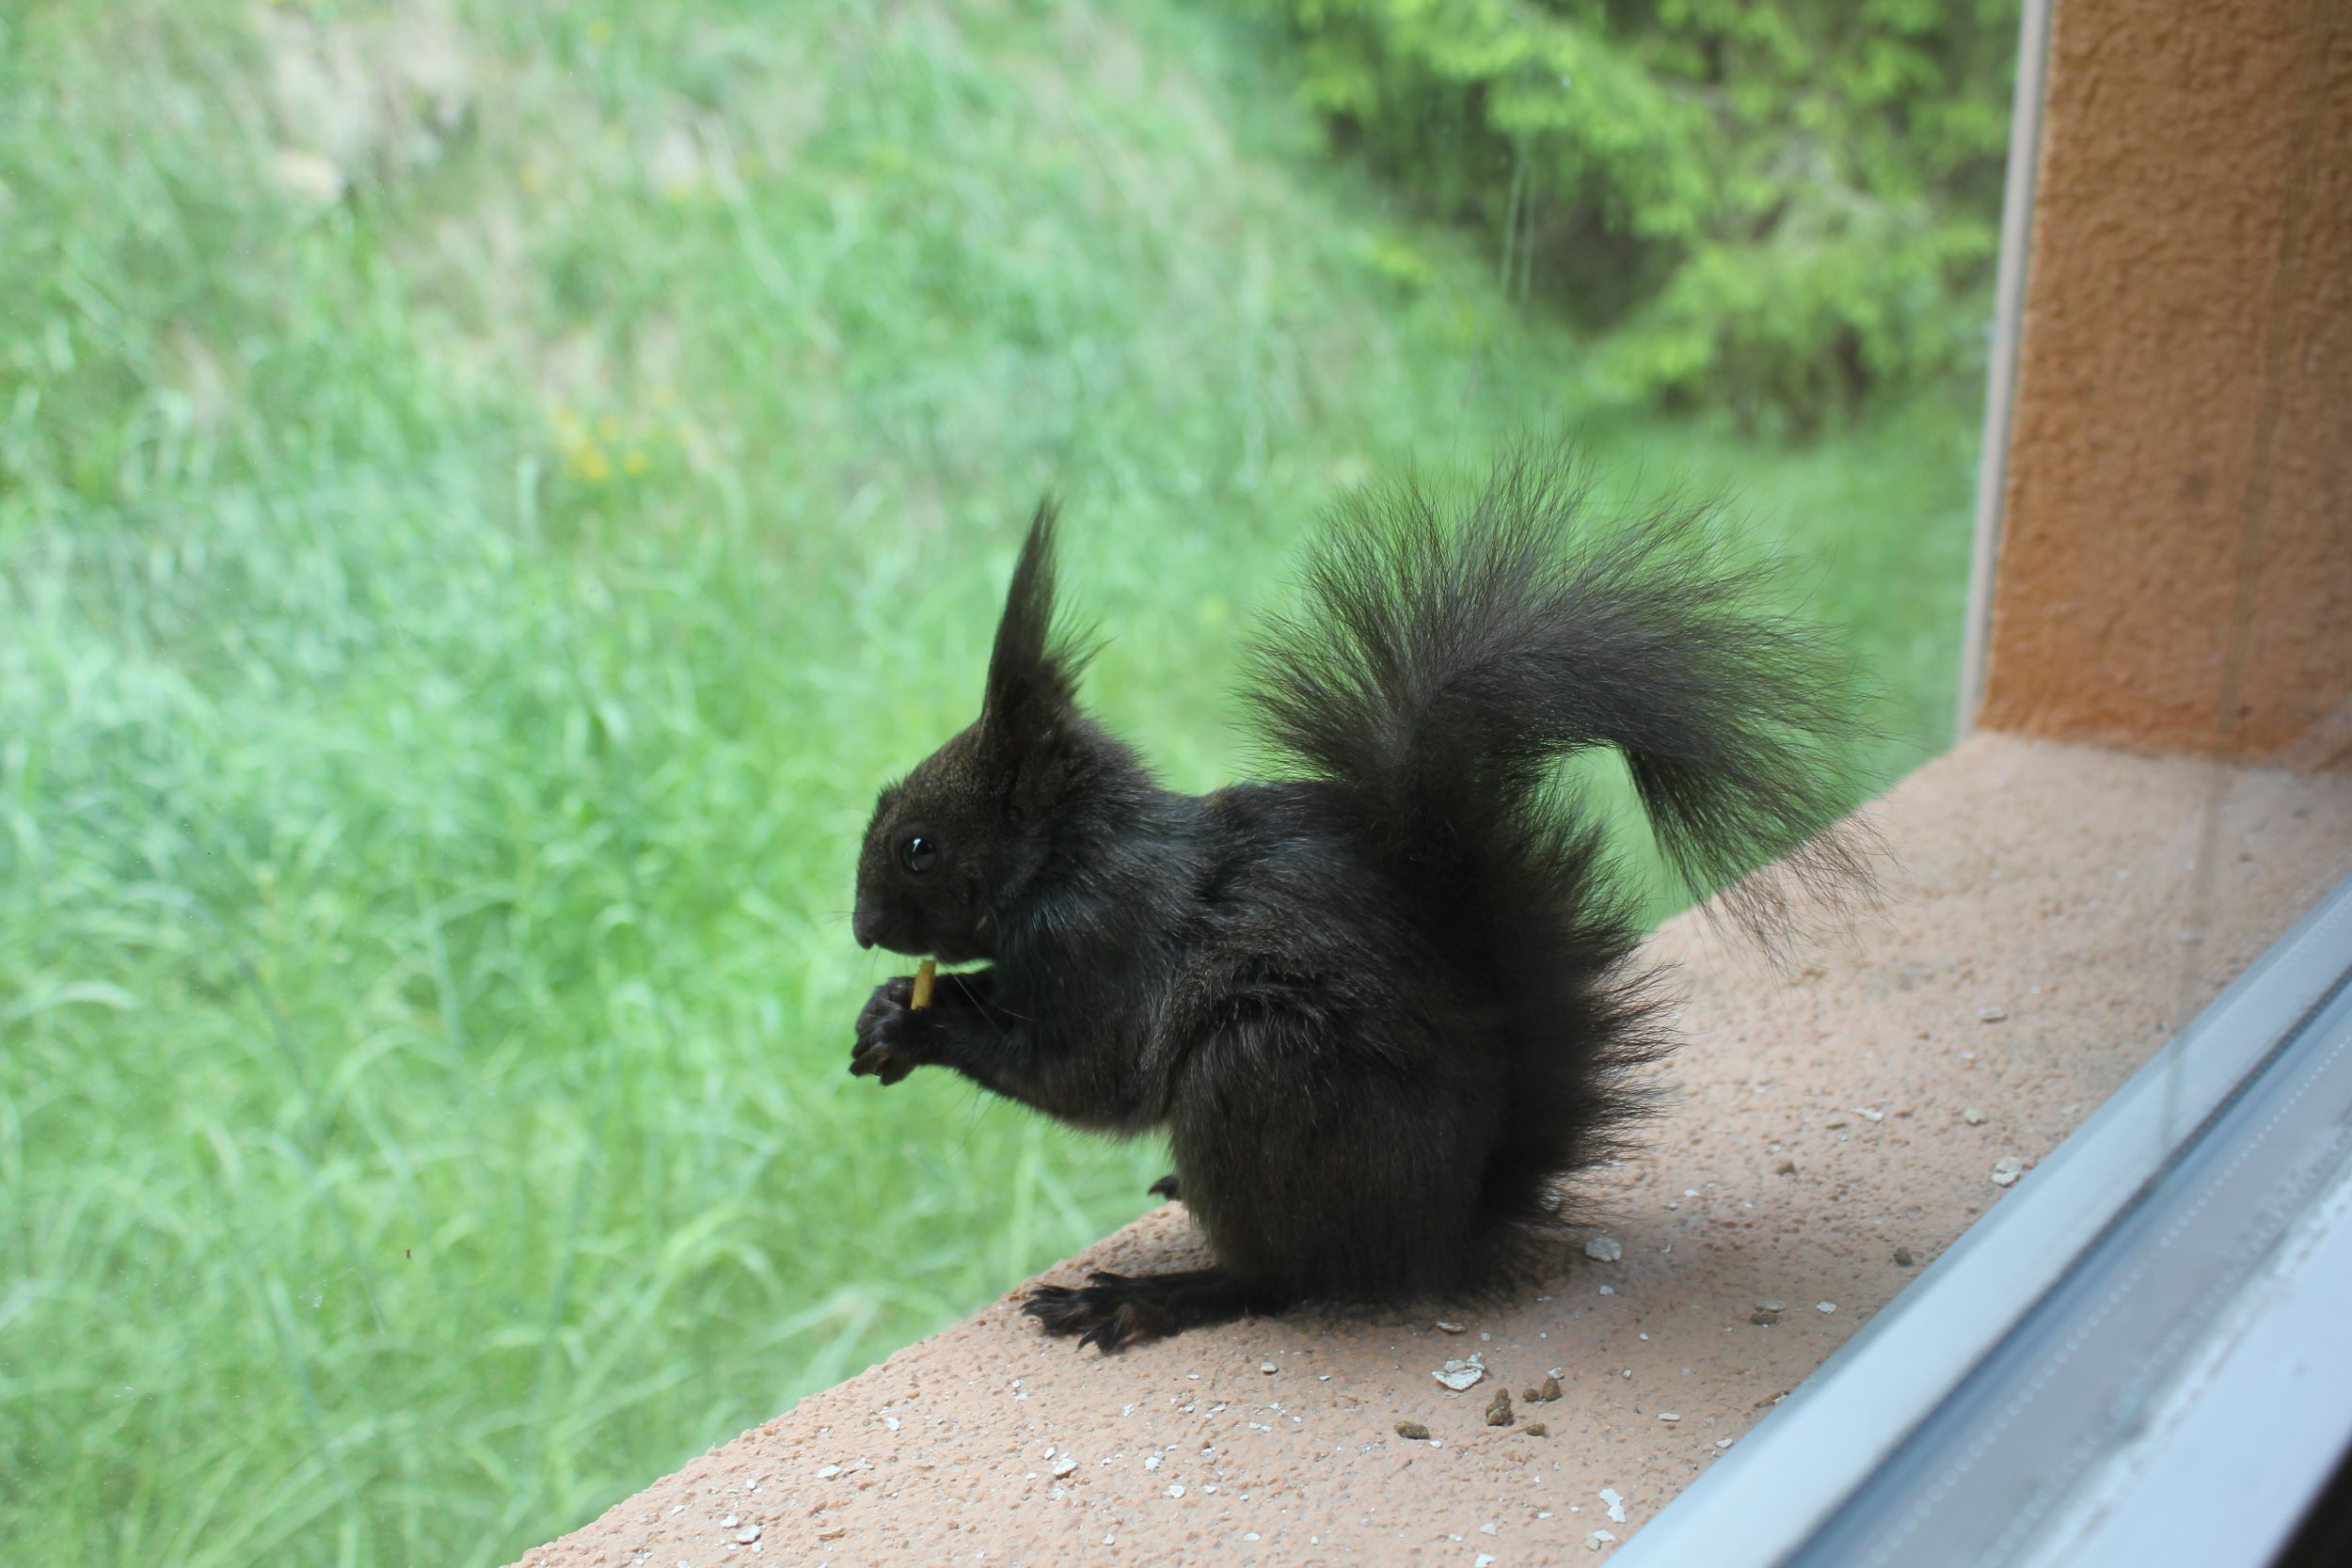 Black Squirrel In High Resolution